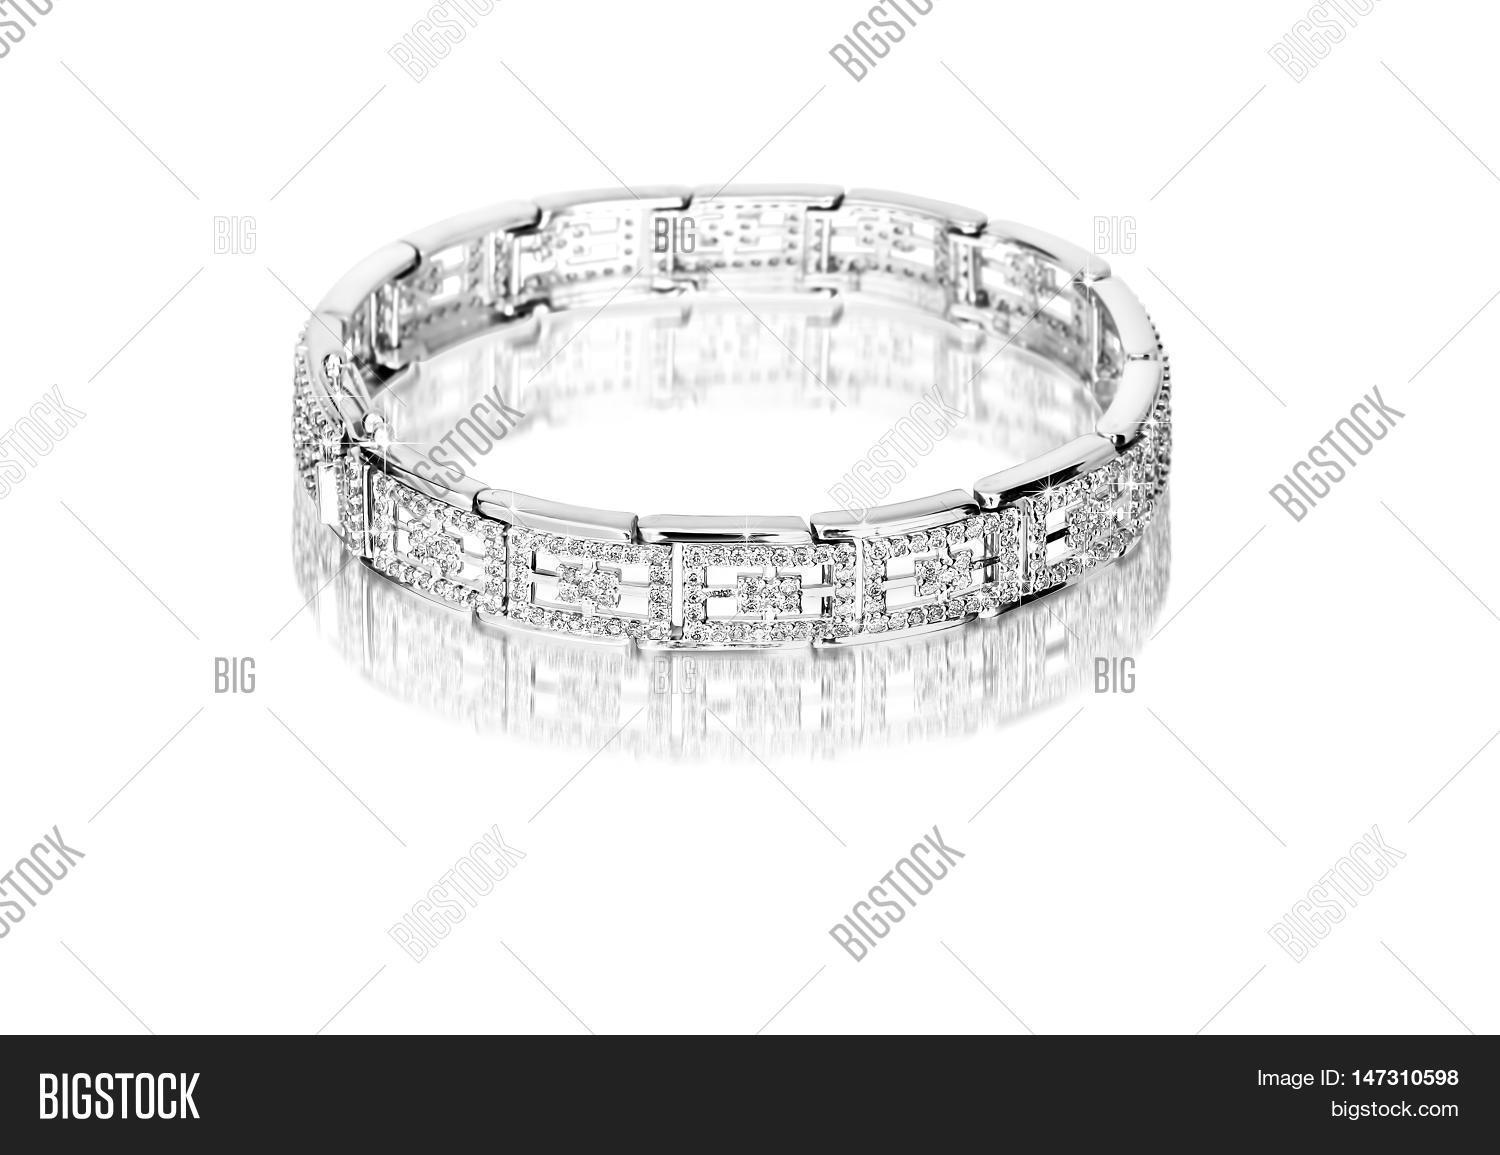 silver bracelet with diamonds on a white background. 3d illustration